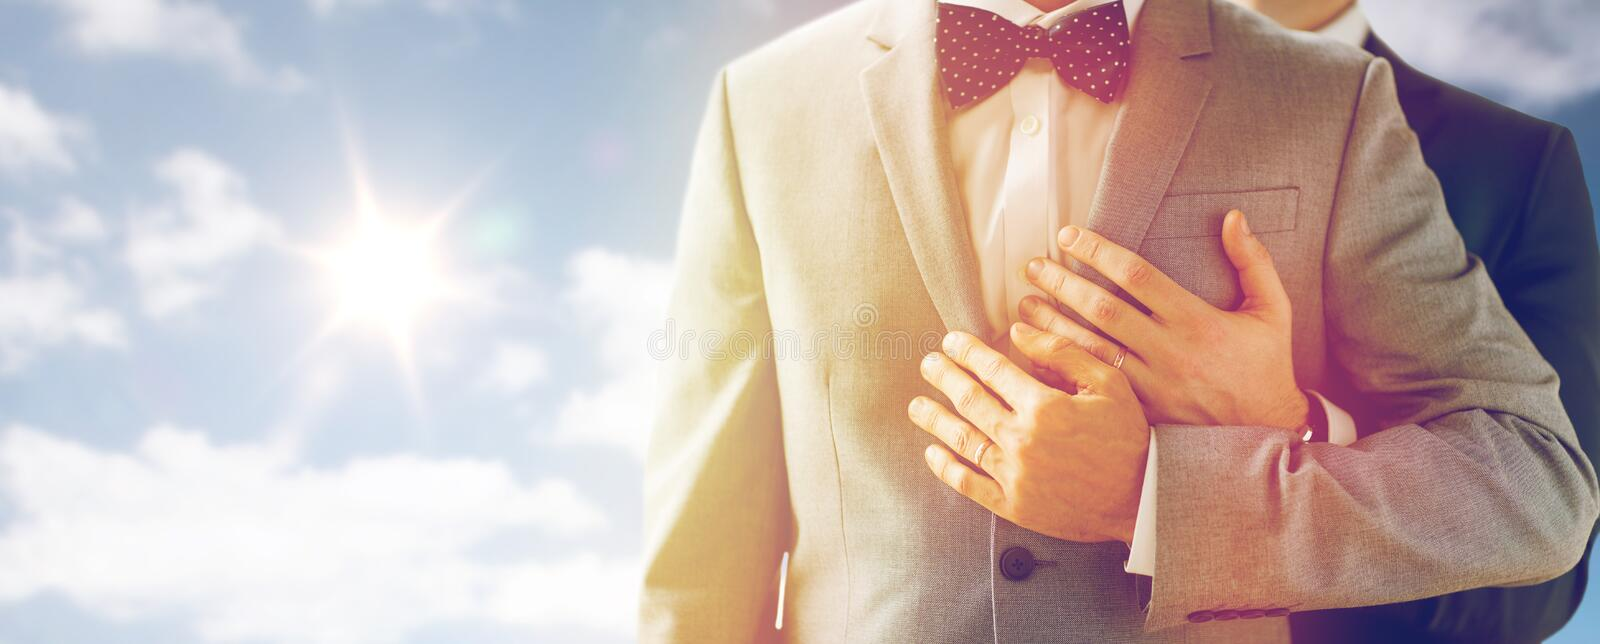 Close up of male gay couple with wedding rings on royalty free stock photos